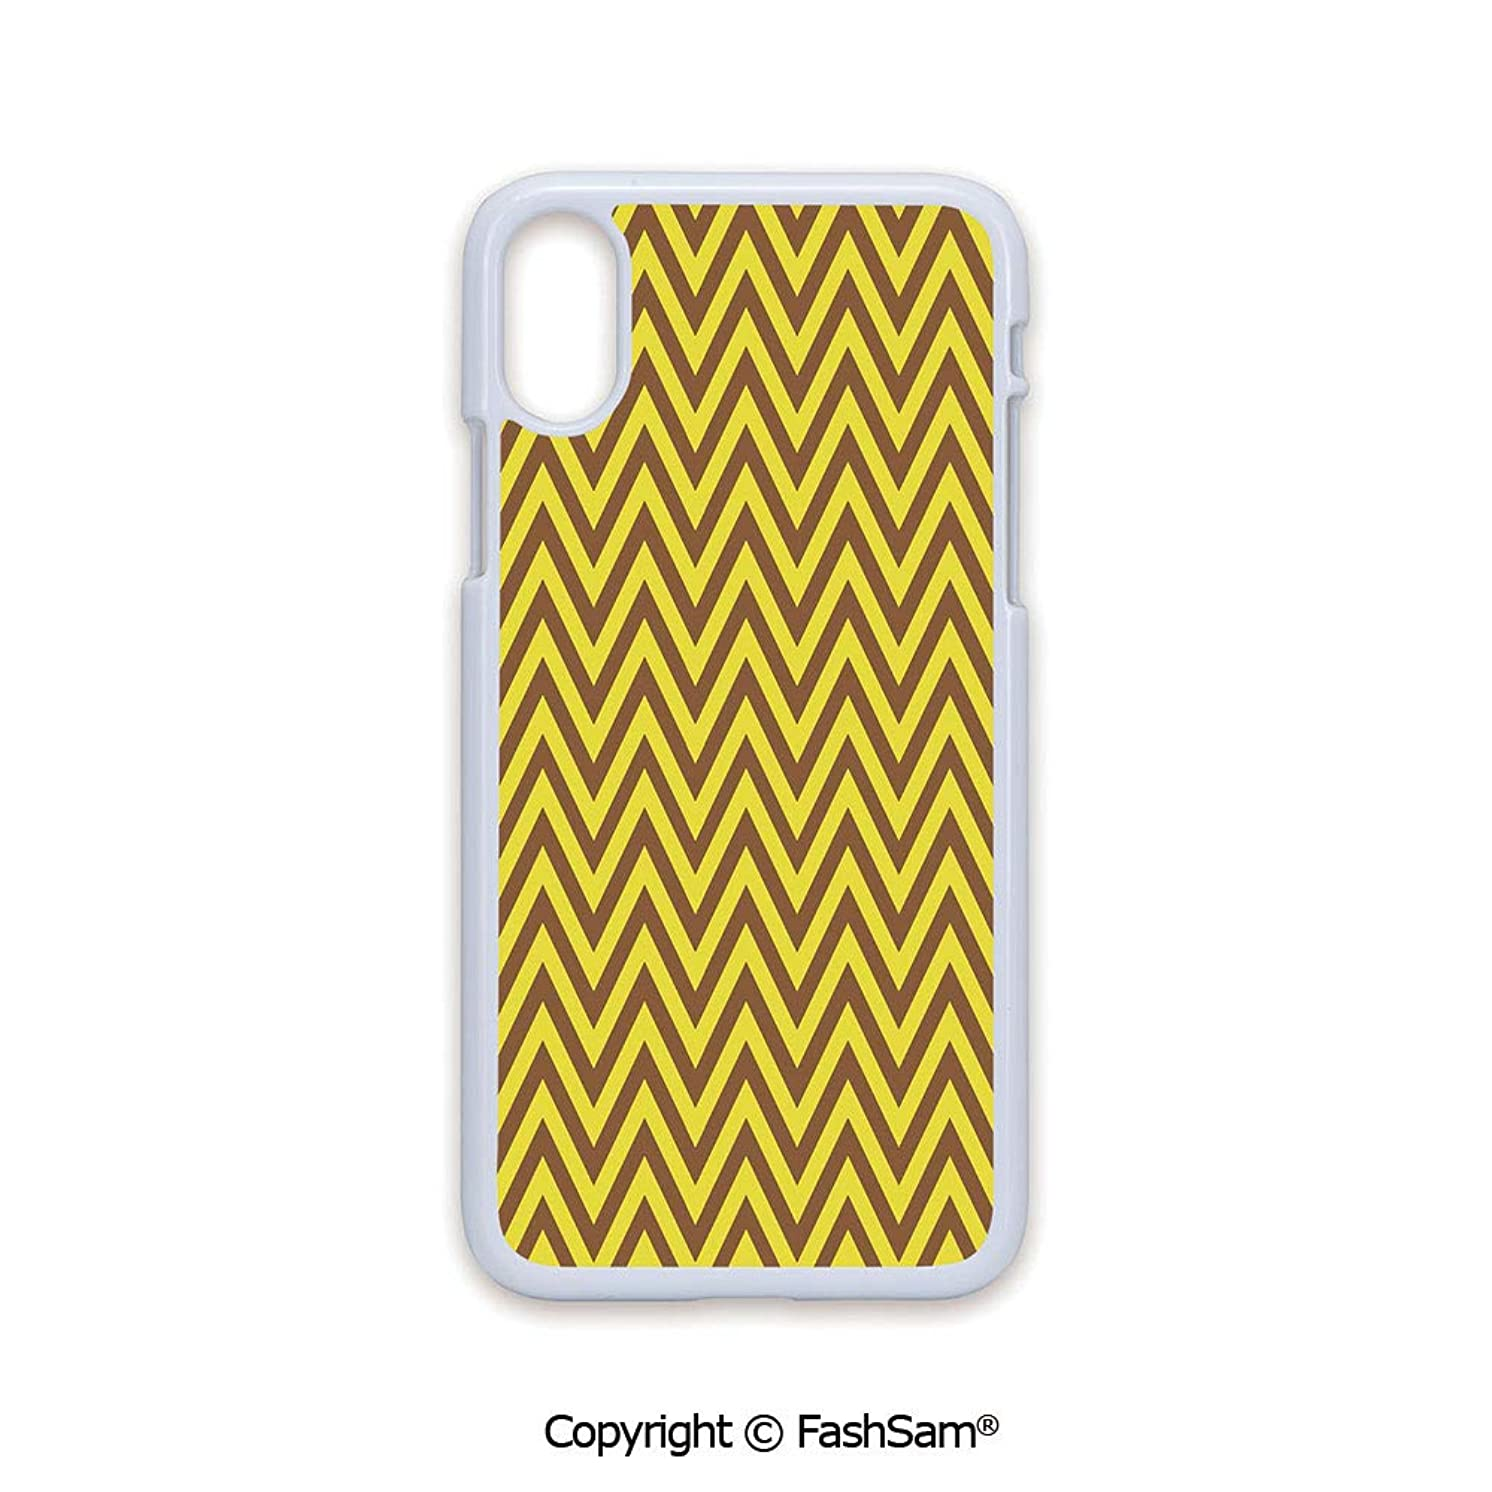 Plastic Rigid Mobile Phone case Compatible with iPhone X Black Edge Vintage Graphic Country Design Classical Tile Old Fashioned Pattern Print Decorative 2D Print Hard Plastic Phone Case